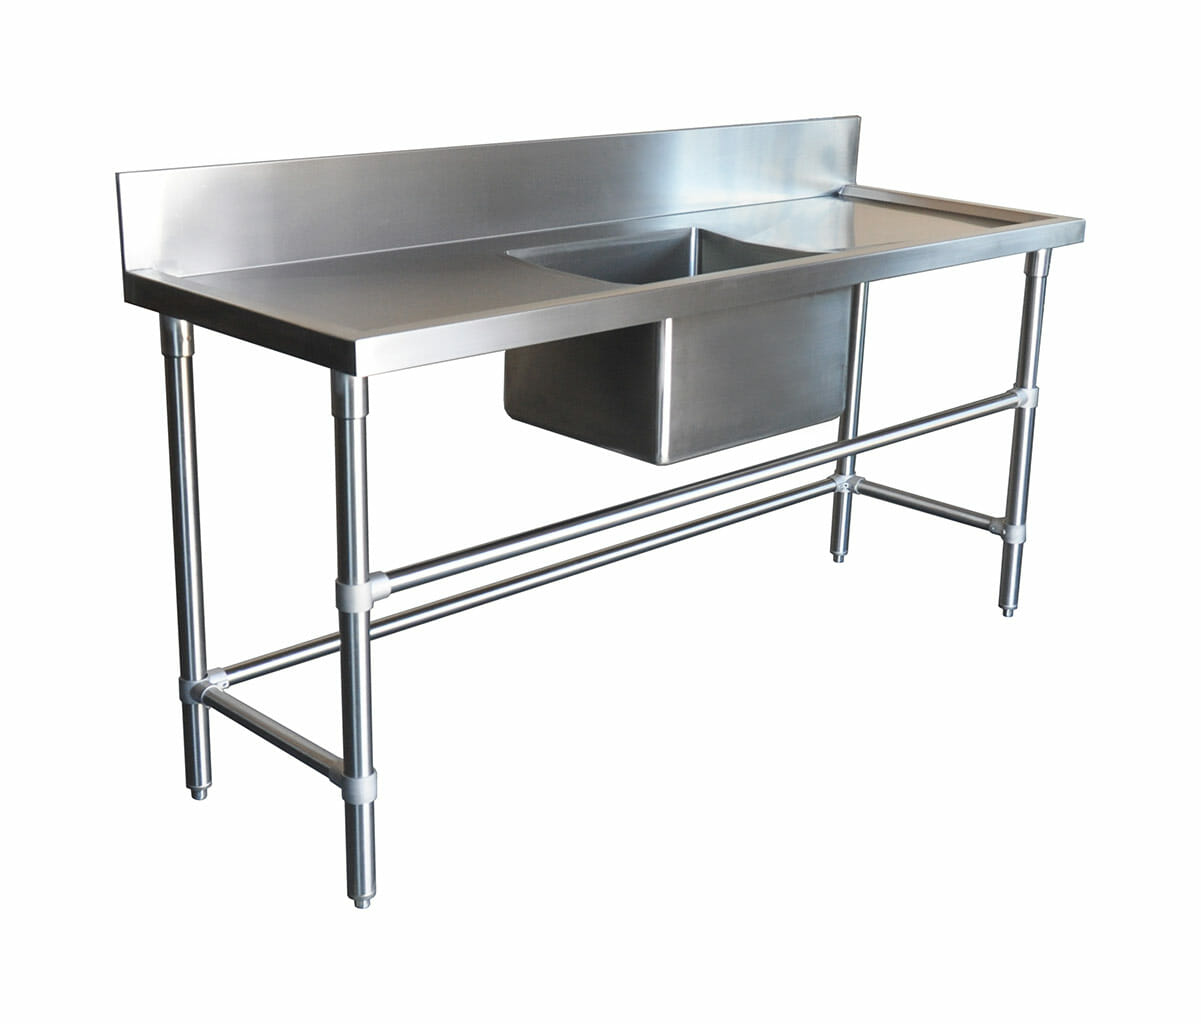 Stainless Steel Catering Sink – Right And Left Bench, 1800 x 610 x 900mm high